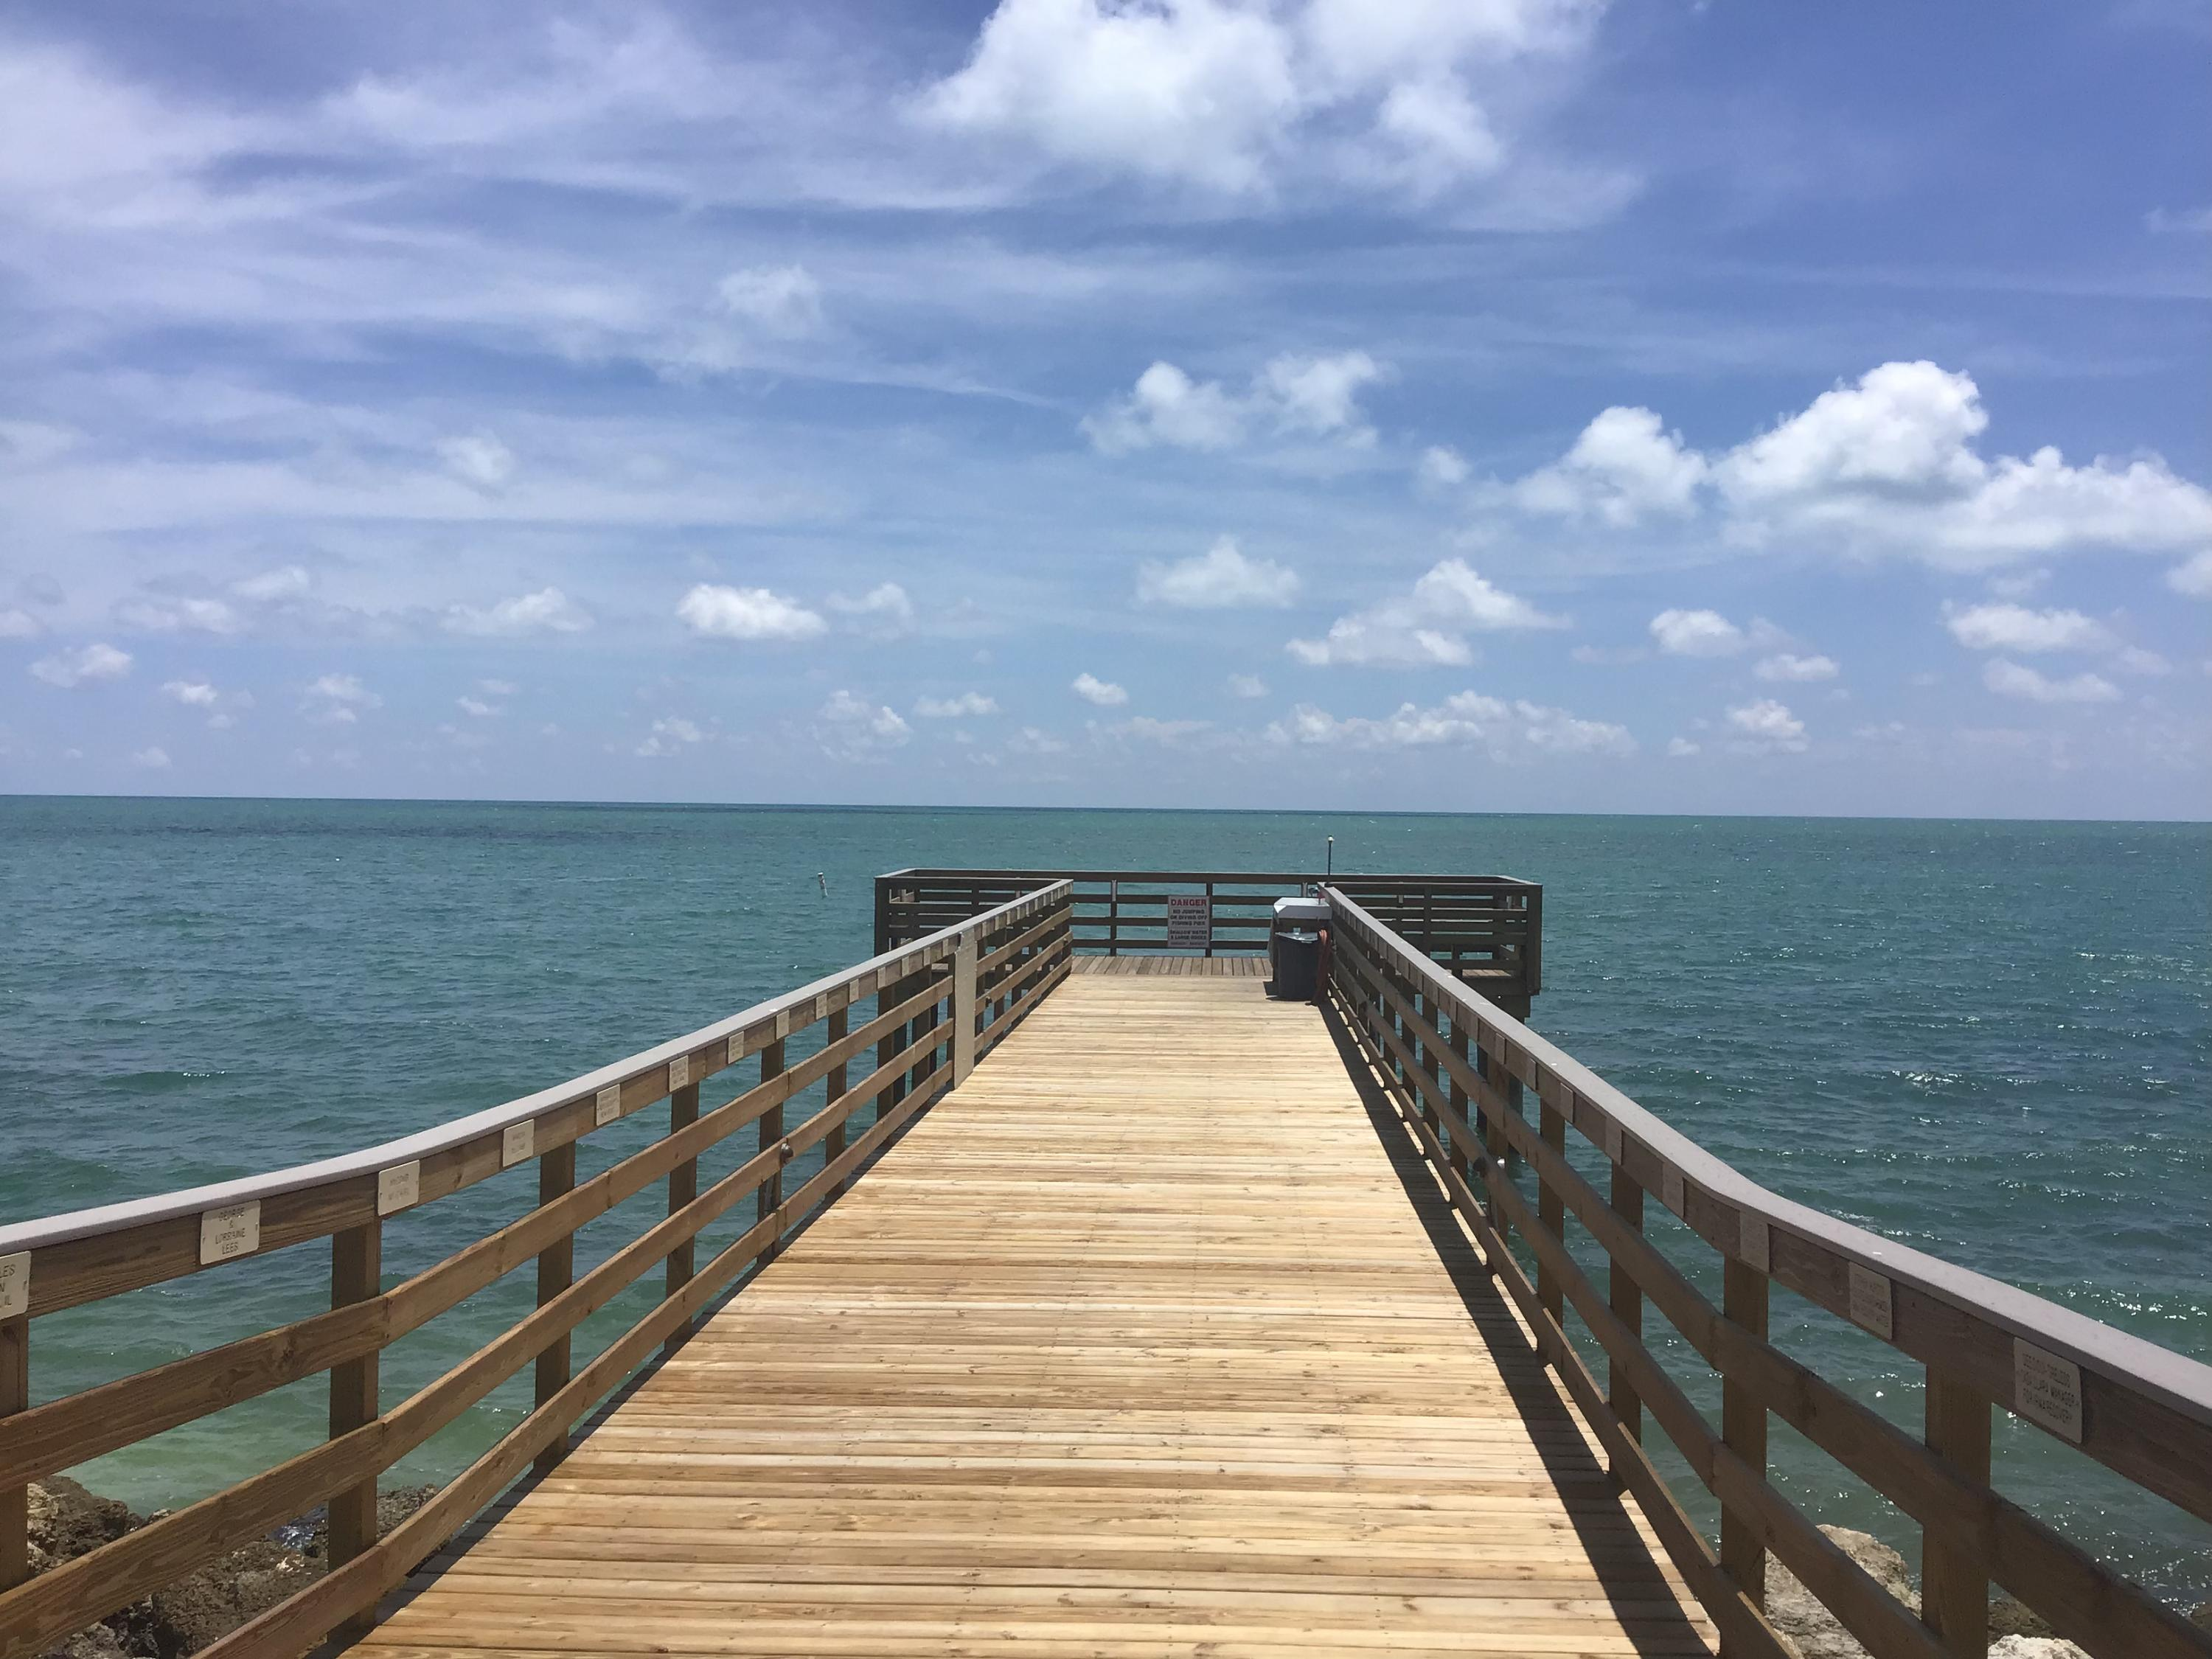 Brand NEW fishing pier!